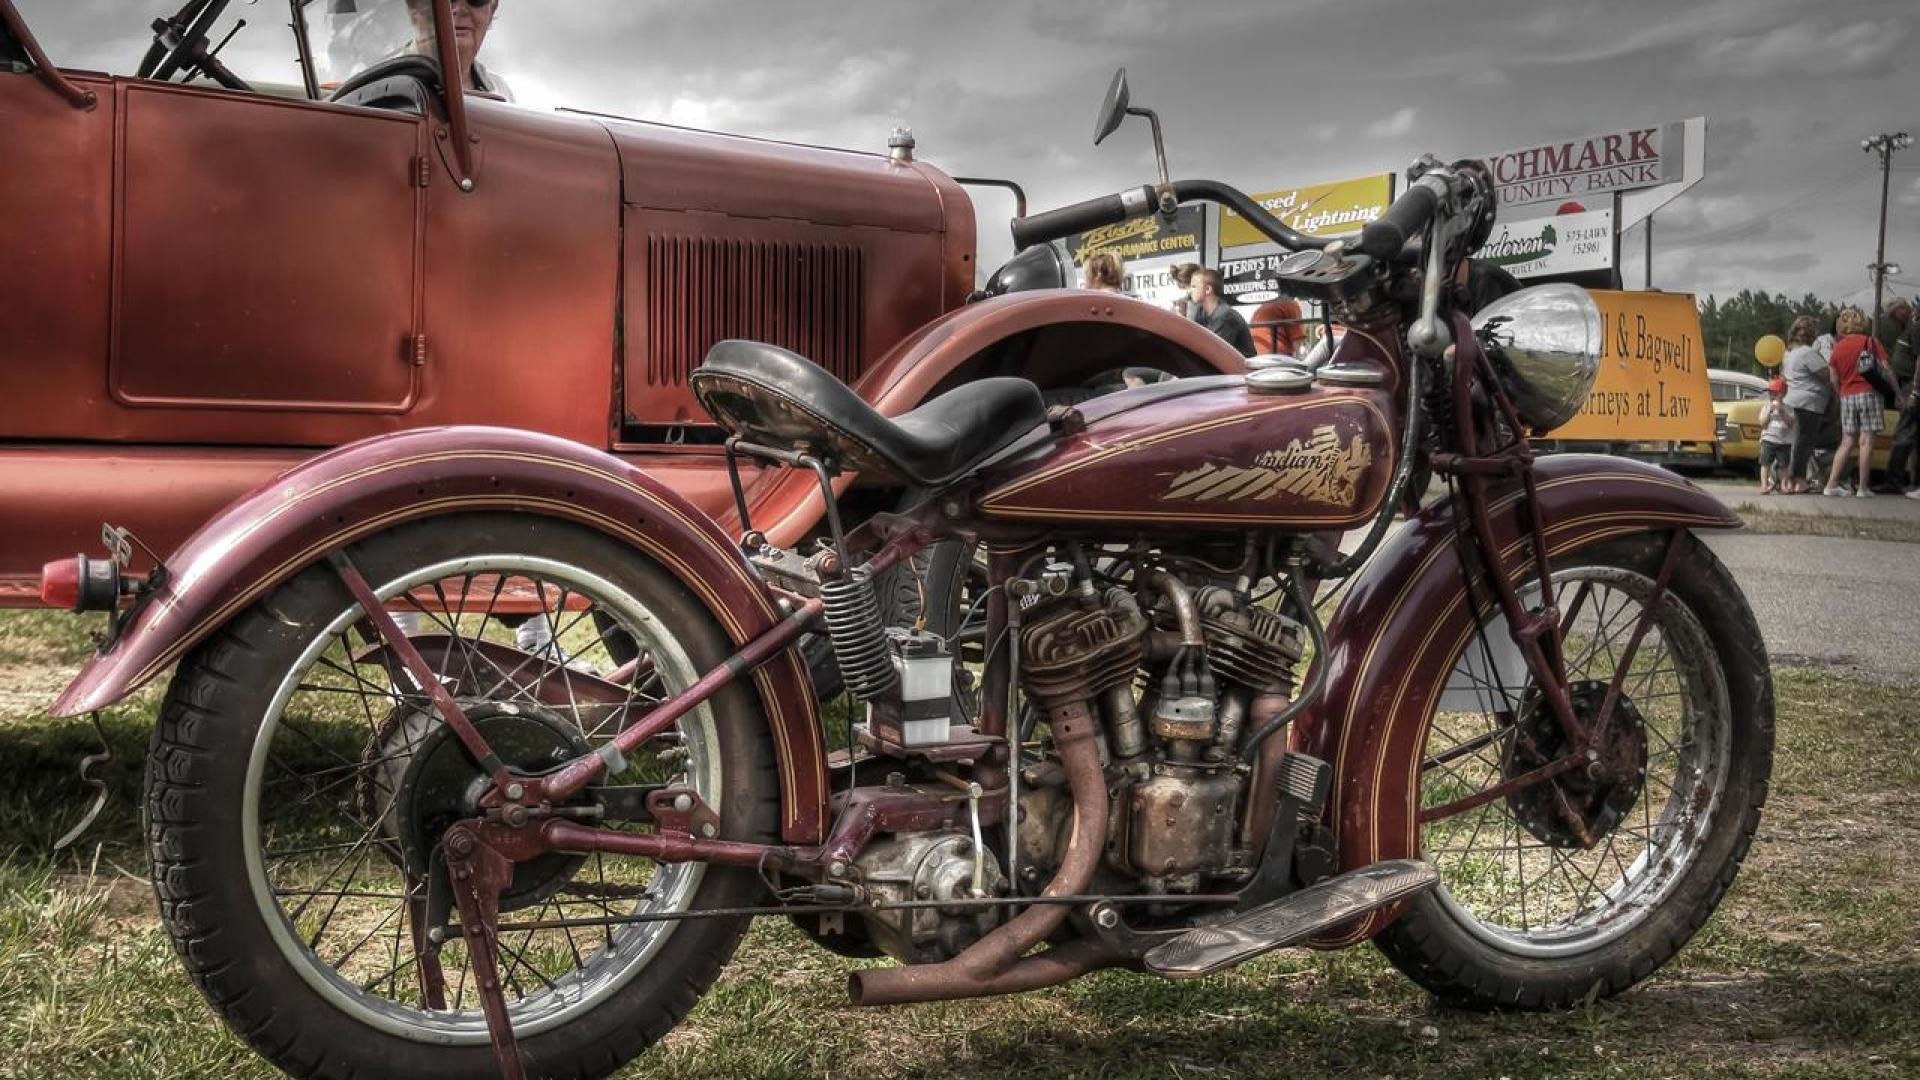 Res: 1920x1080, Indian Motorcycles 1920 Background 1 HD Wallpapers